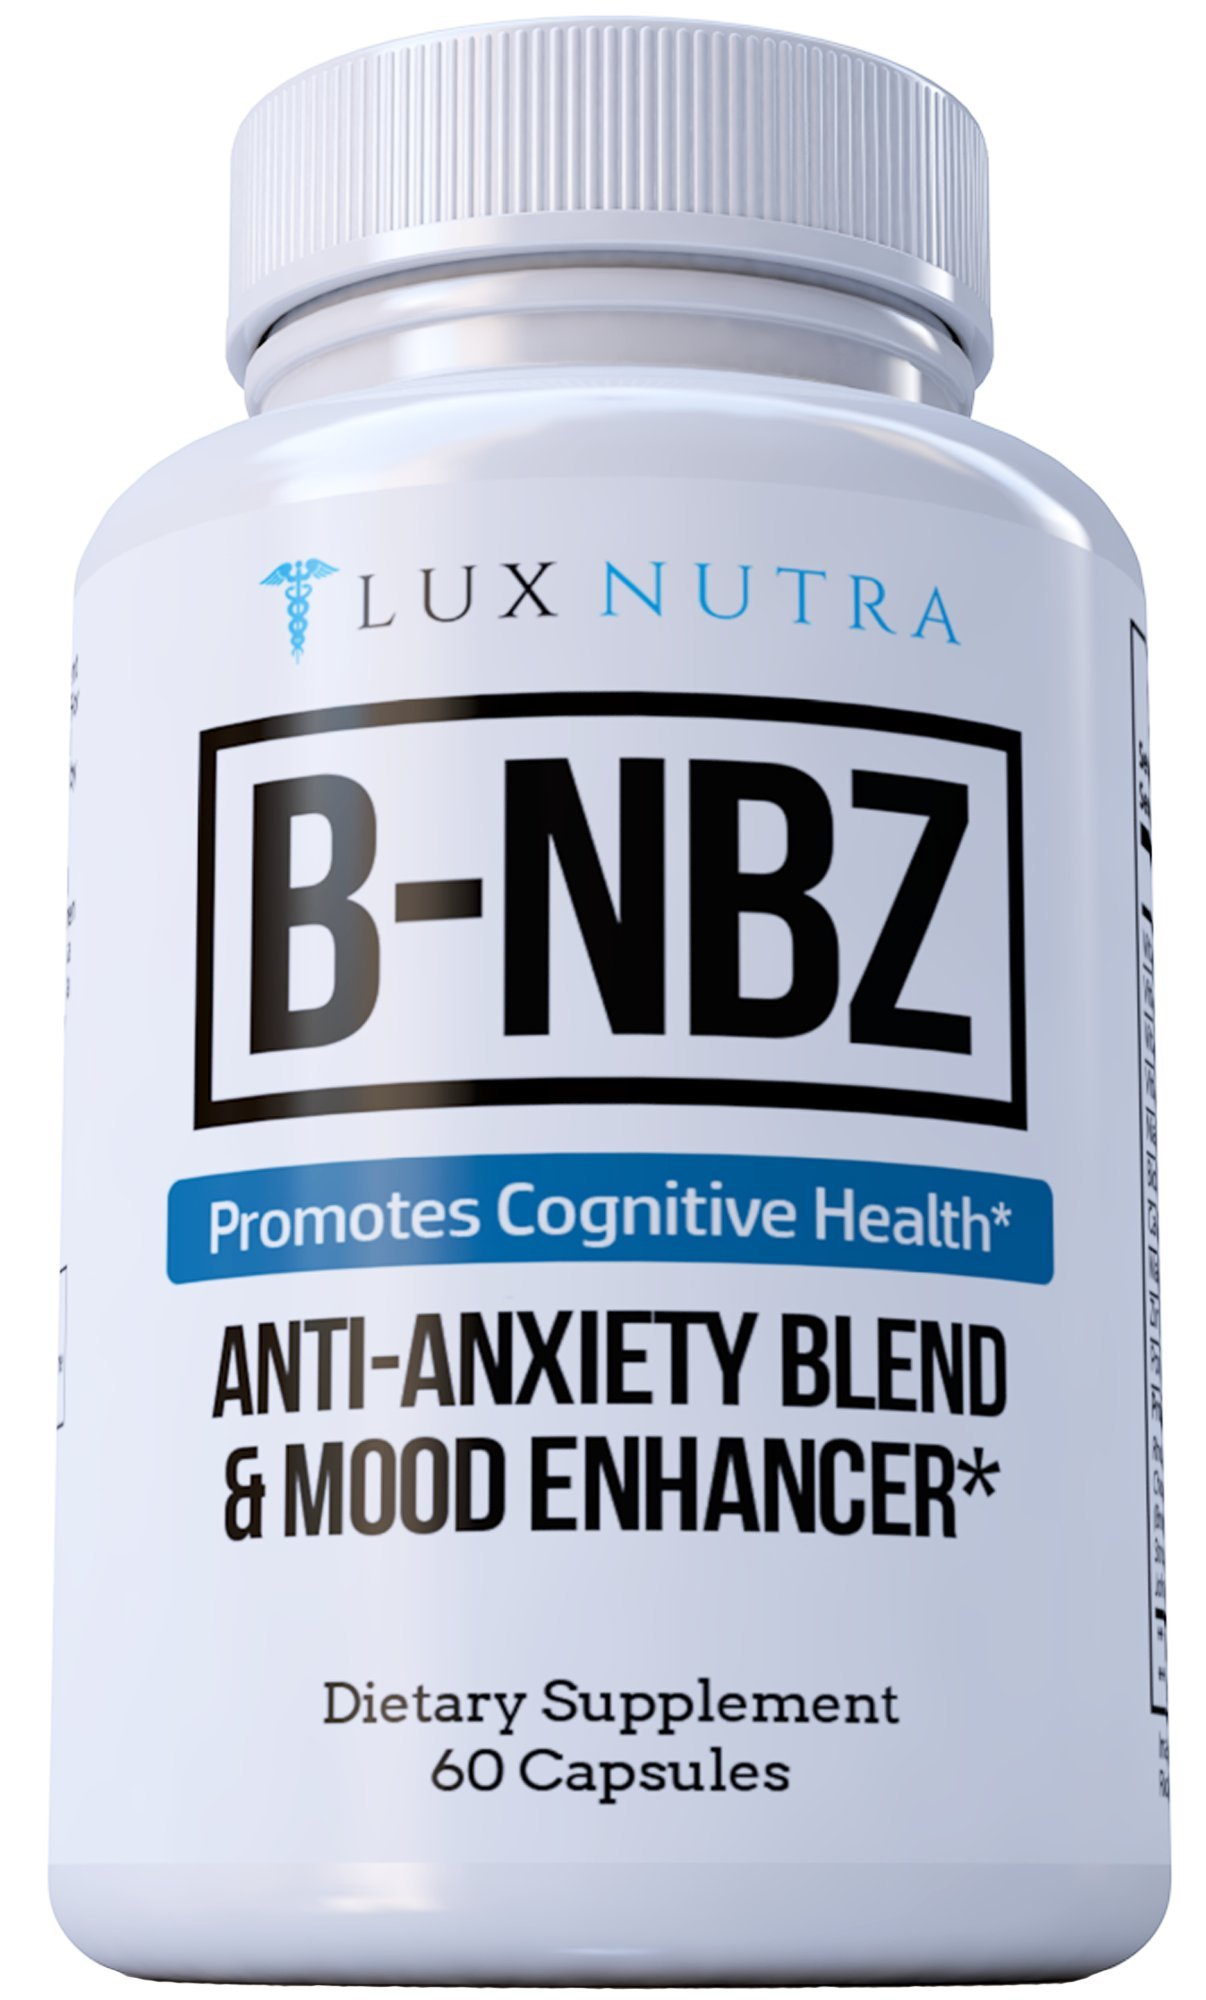 B-NBZ ANTI-ANXIETY BLEND AND MOOD ENHANCER - Anxiety Supplement & Panic Attack Relief - Amazing Anxiety Natural Supplements & Panic Attack Herb - B Vitamins, Niacin, Biotin, Zinc, 5HTP #1 Anxiety 2018